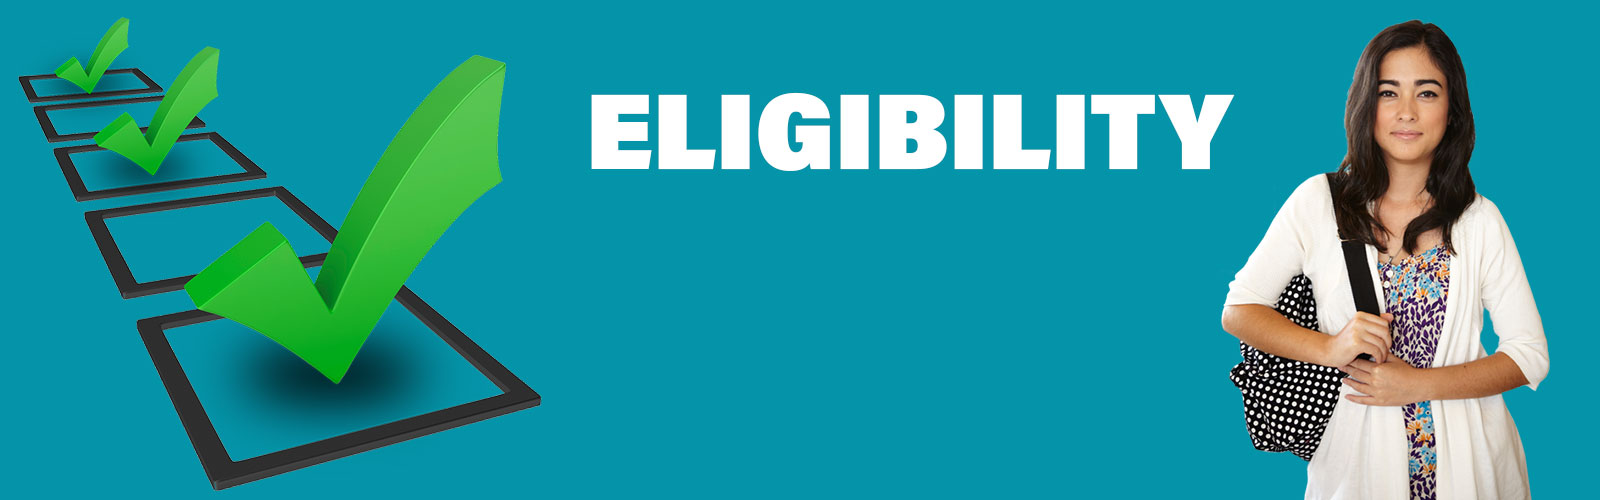 Eligibility for Civil Serice Exam India | Vajirao and Reddy Institute Pvt. Ltd. | Vajirao IAS Academy Delhi